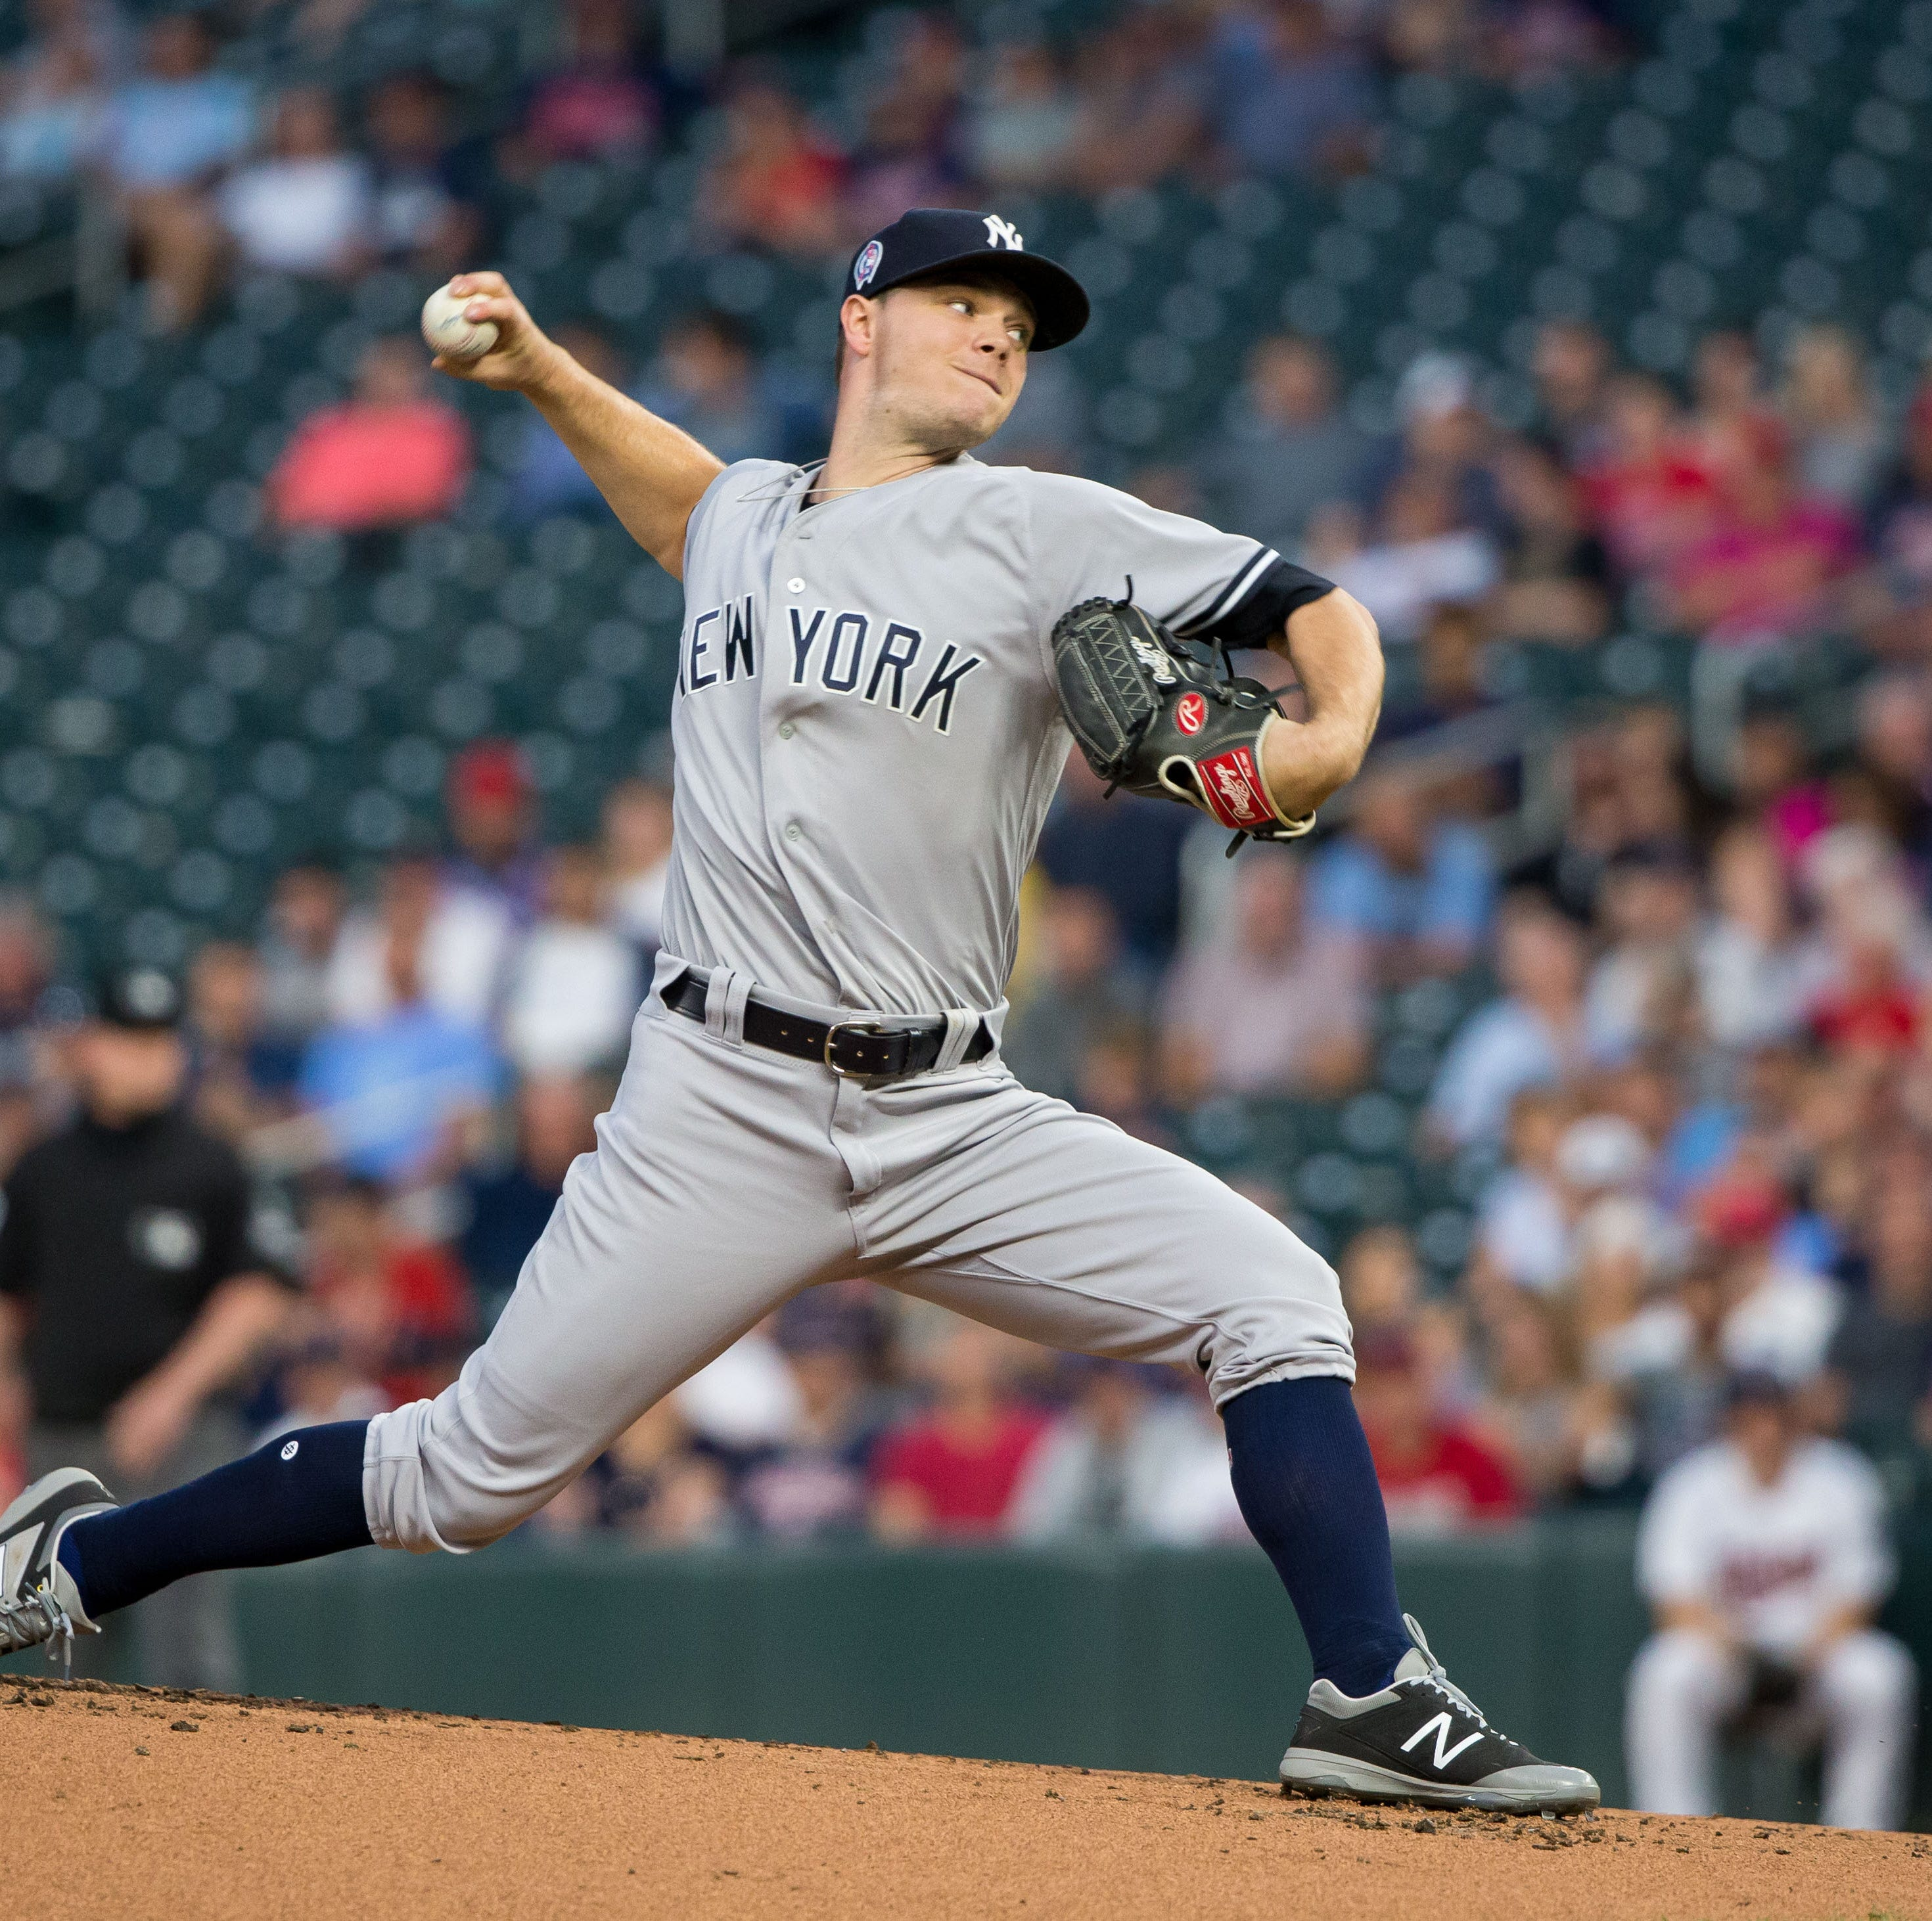 Sonny Gray headed to Cincinnati Reds in trade with Yankees, signed to an extension